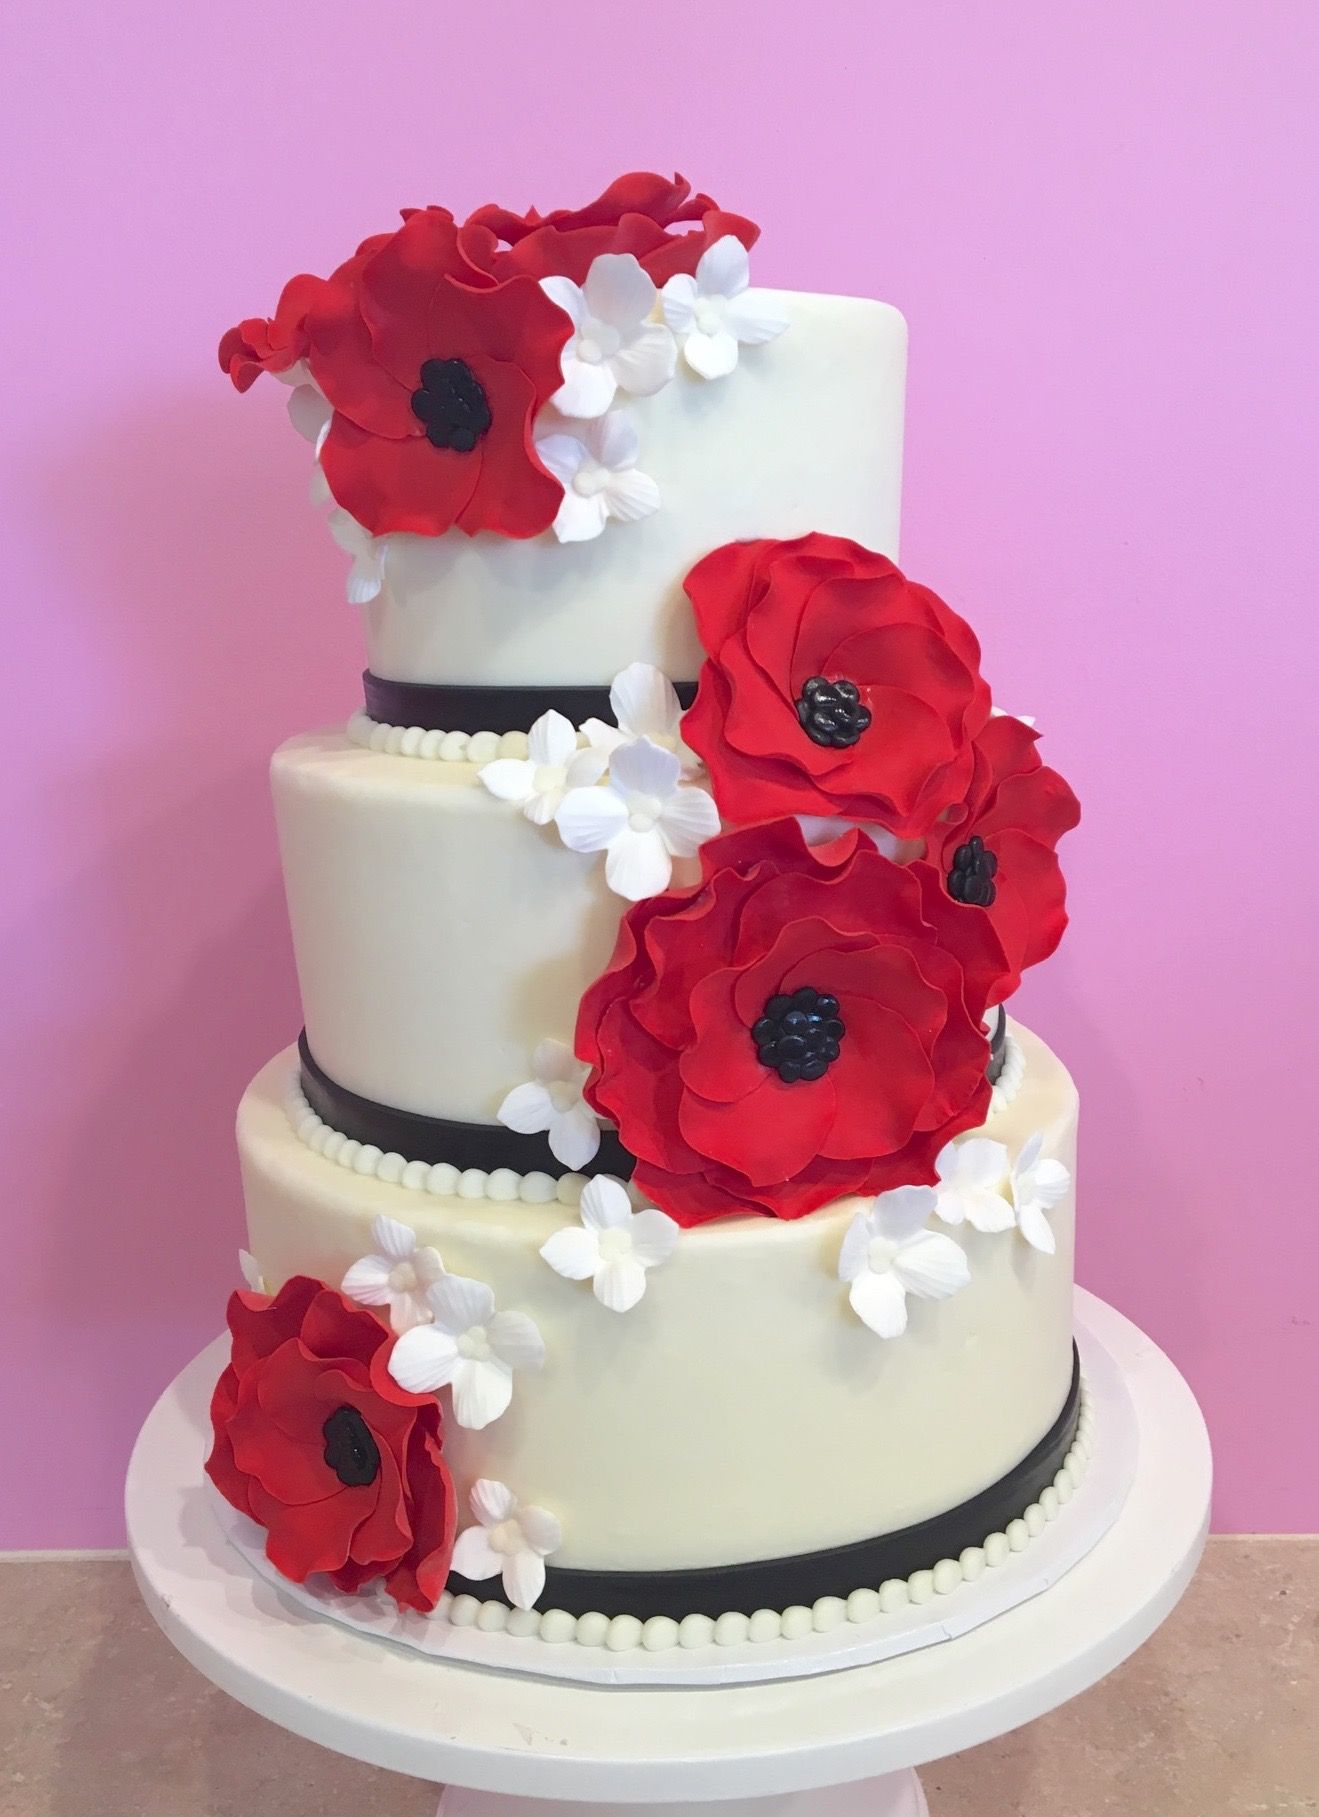 3 Tier Wedding Cake With Red Flowers And Tiny White Accent Flowers